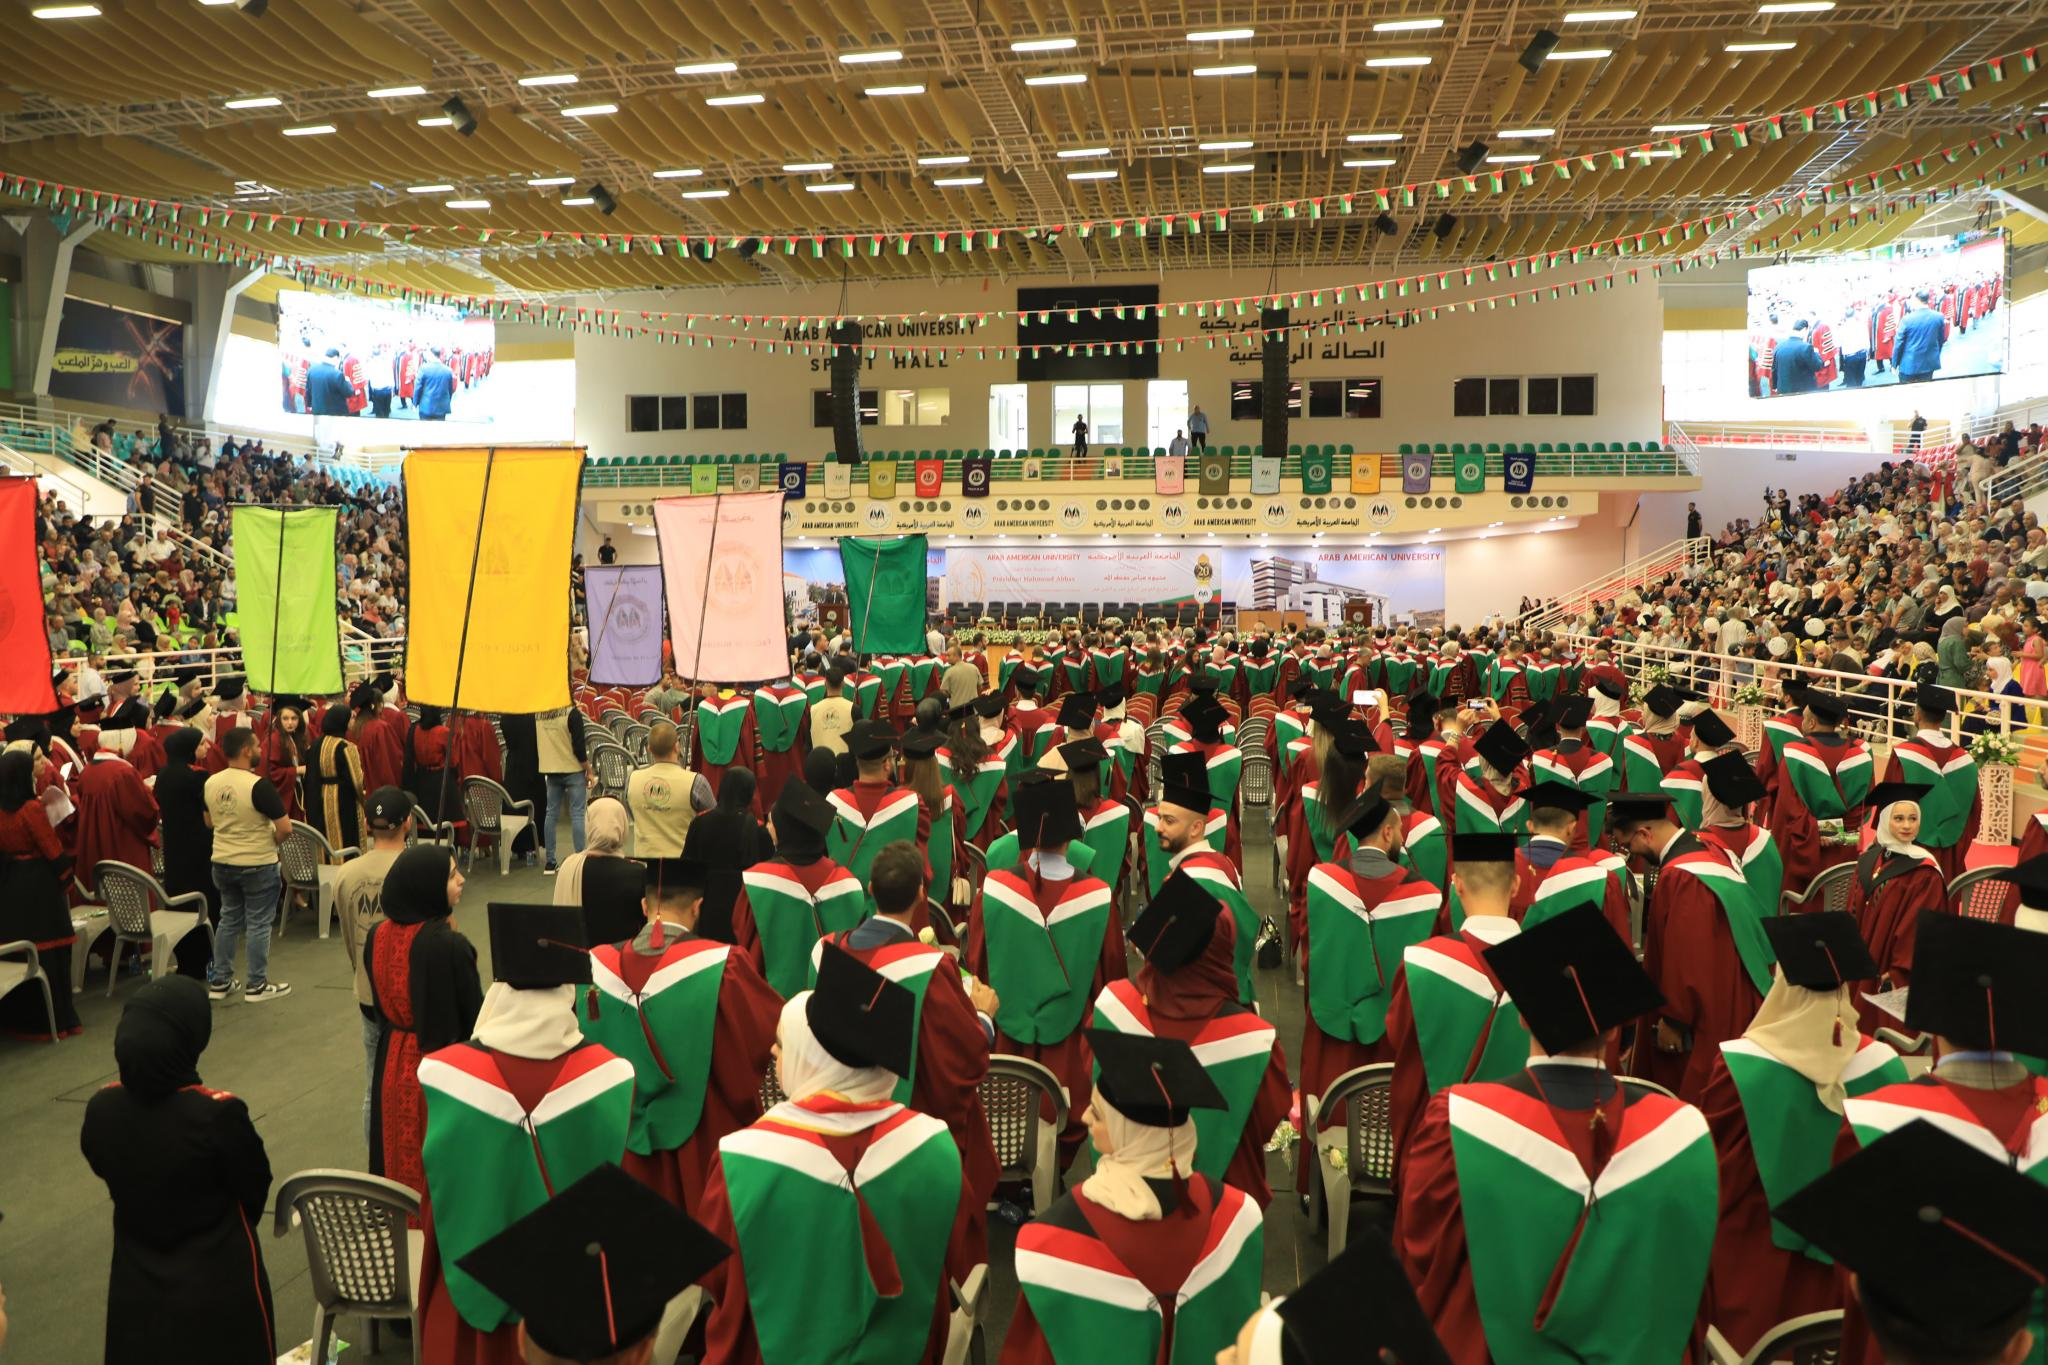 AAUP Starts the Celebrations of the Graduation Ceremonies of its 17th and 18th Cohorts